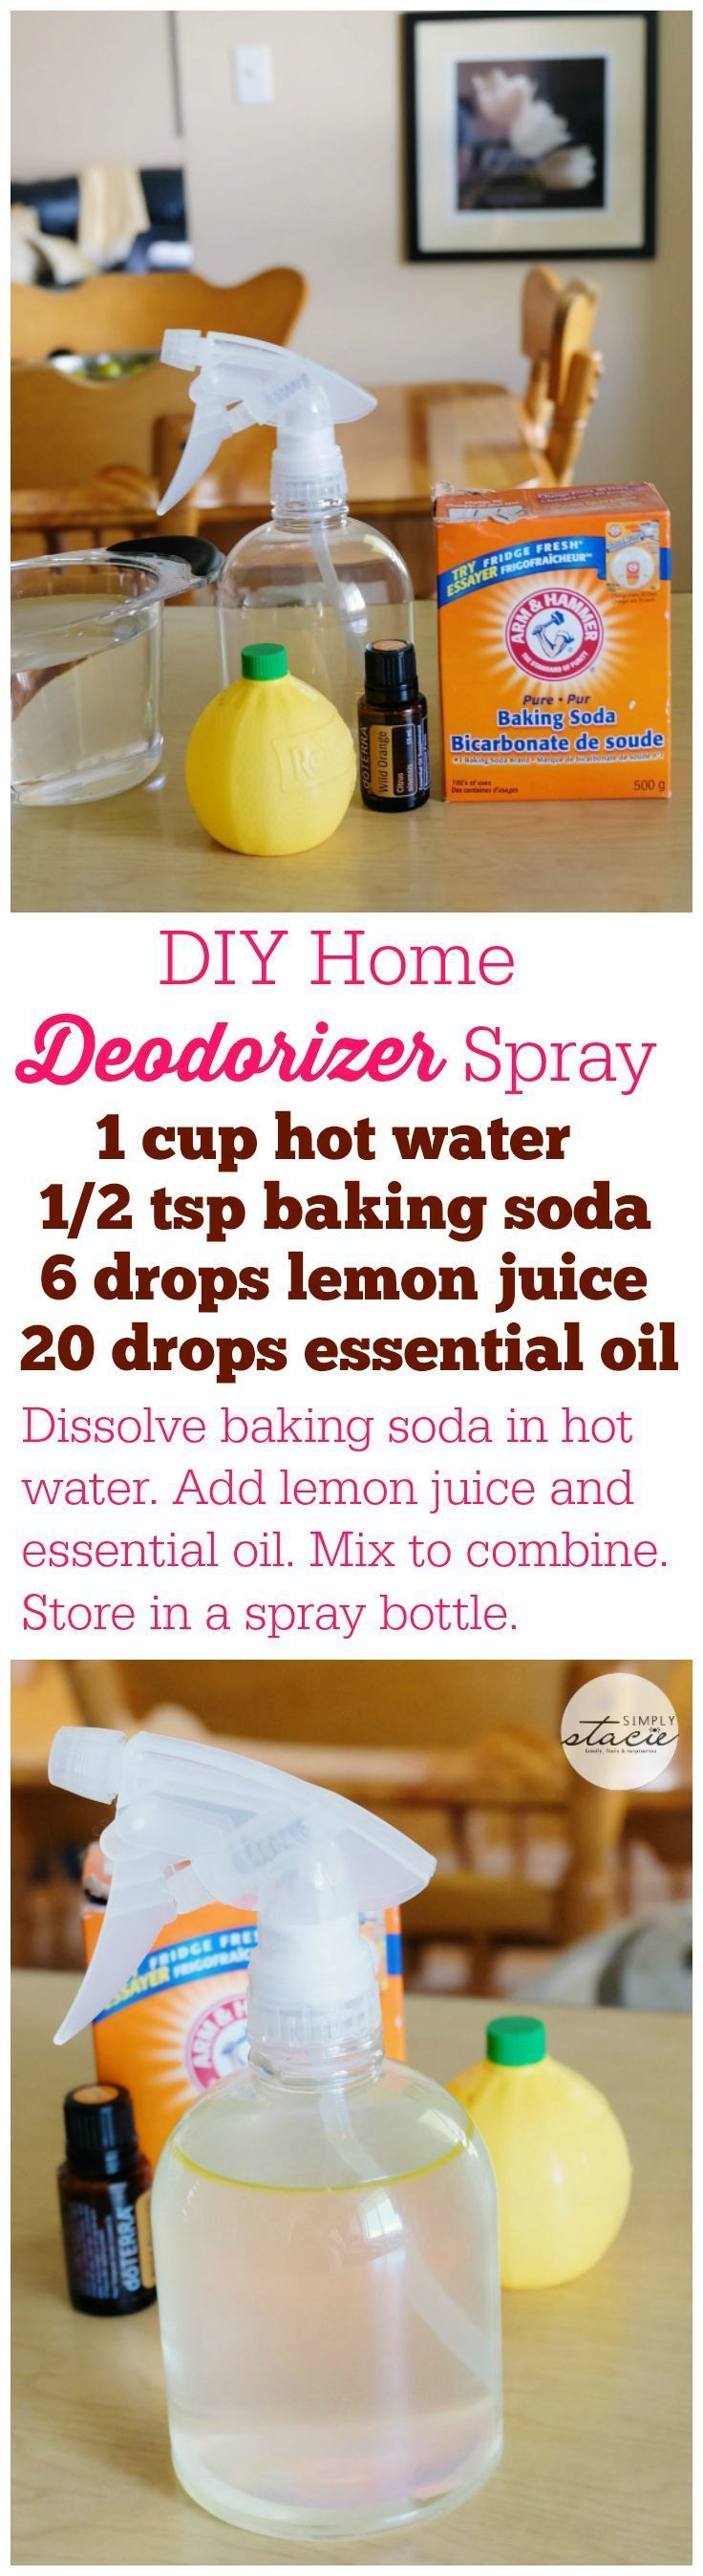 DIY Home Deodorizer Spray your house will smell fresh with this simple recipe CatSprayingBakingSoda